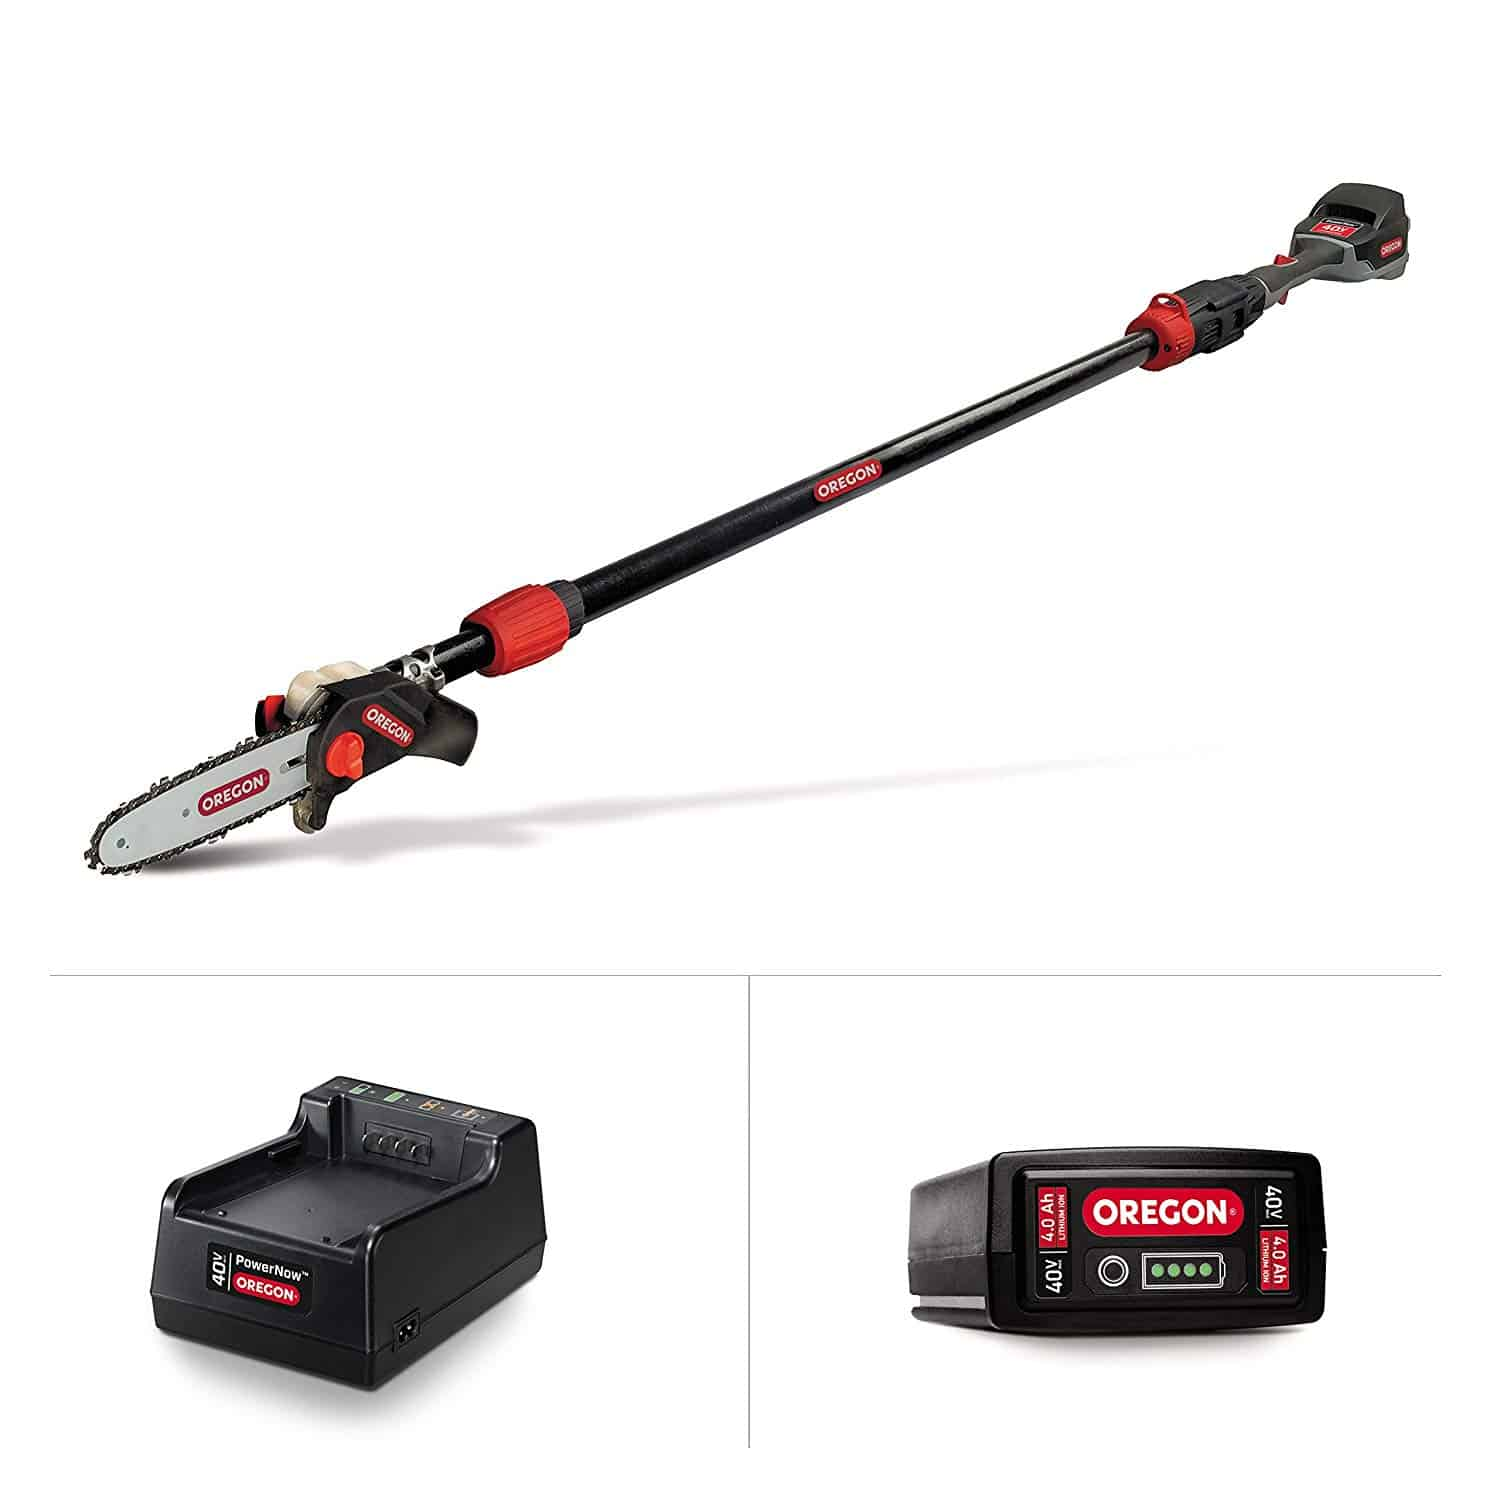 Oregon Cordless Pole Saw Kit with Battery and Charger